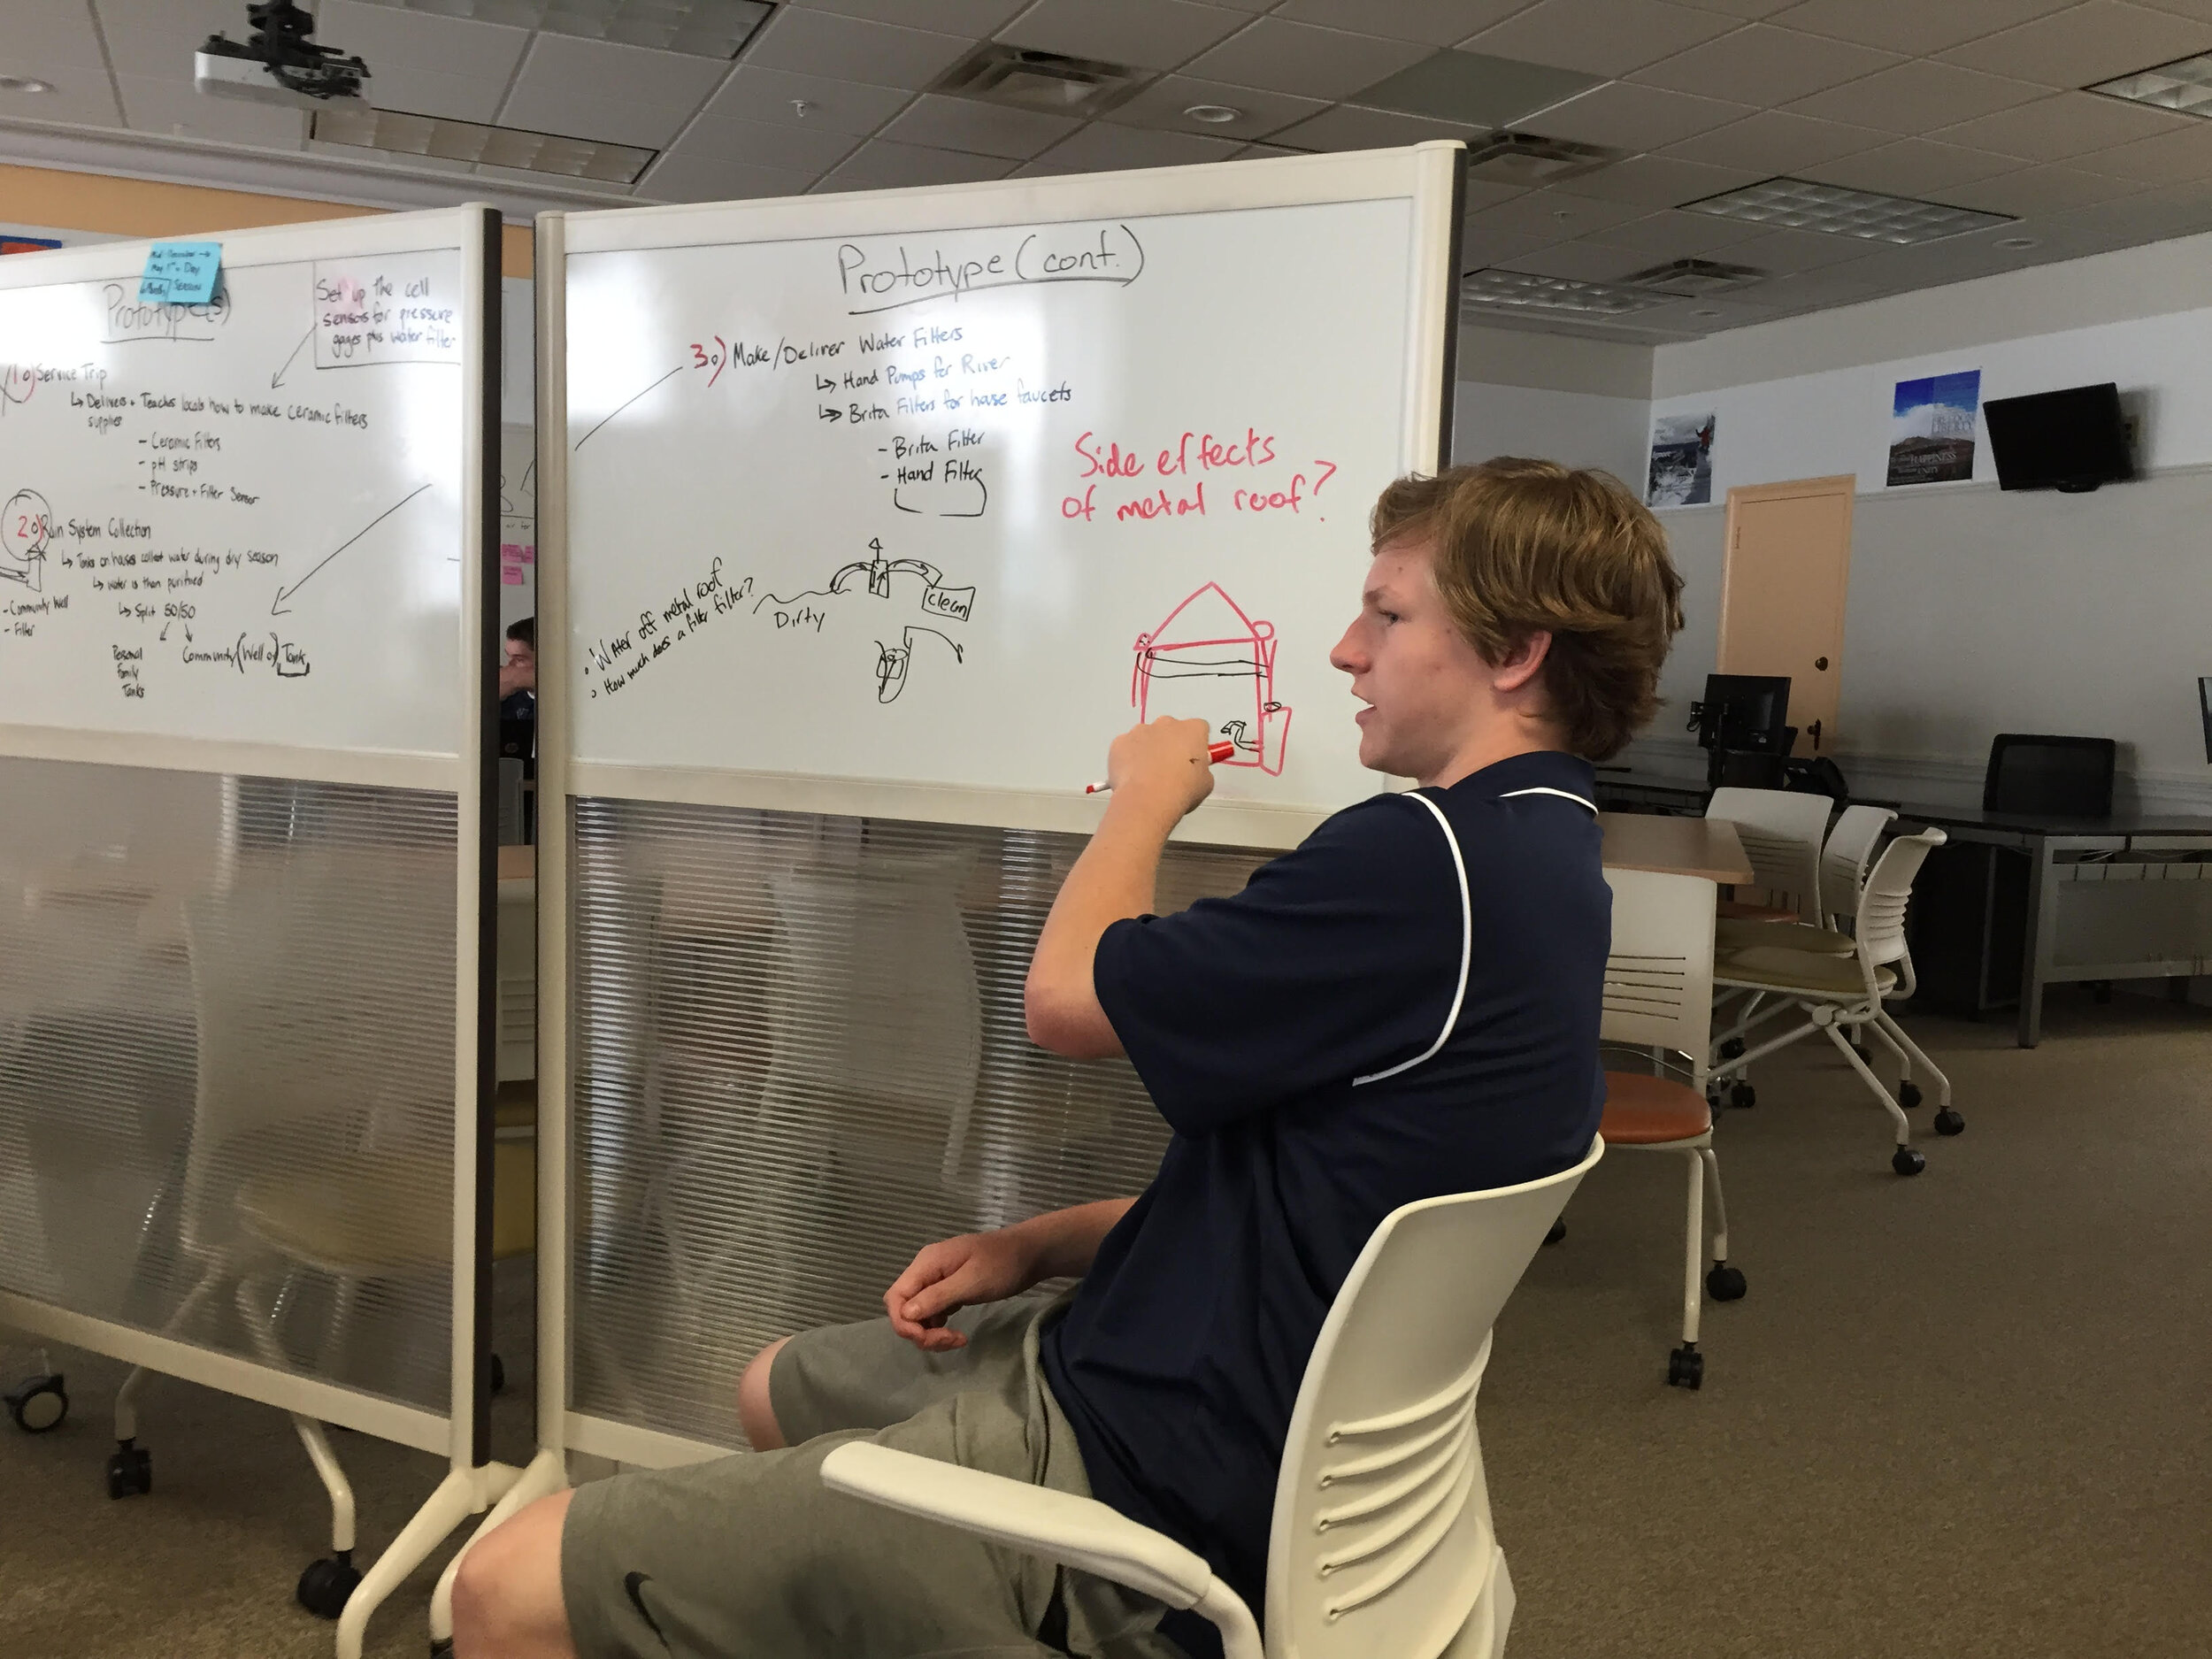 Flexible furniture and writeable surfaces were key to enabling a new learning experience like Social Entrepreneurship at Malvern Prep.